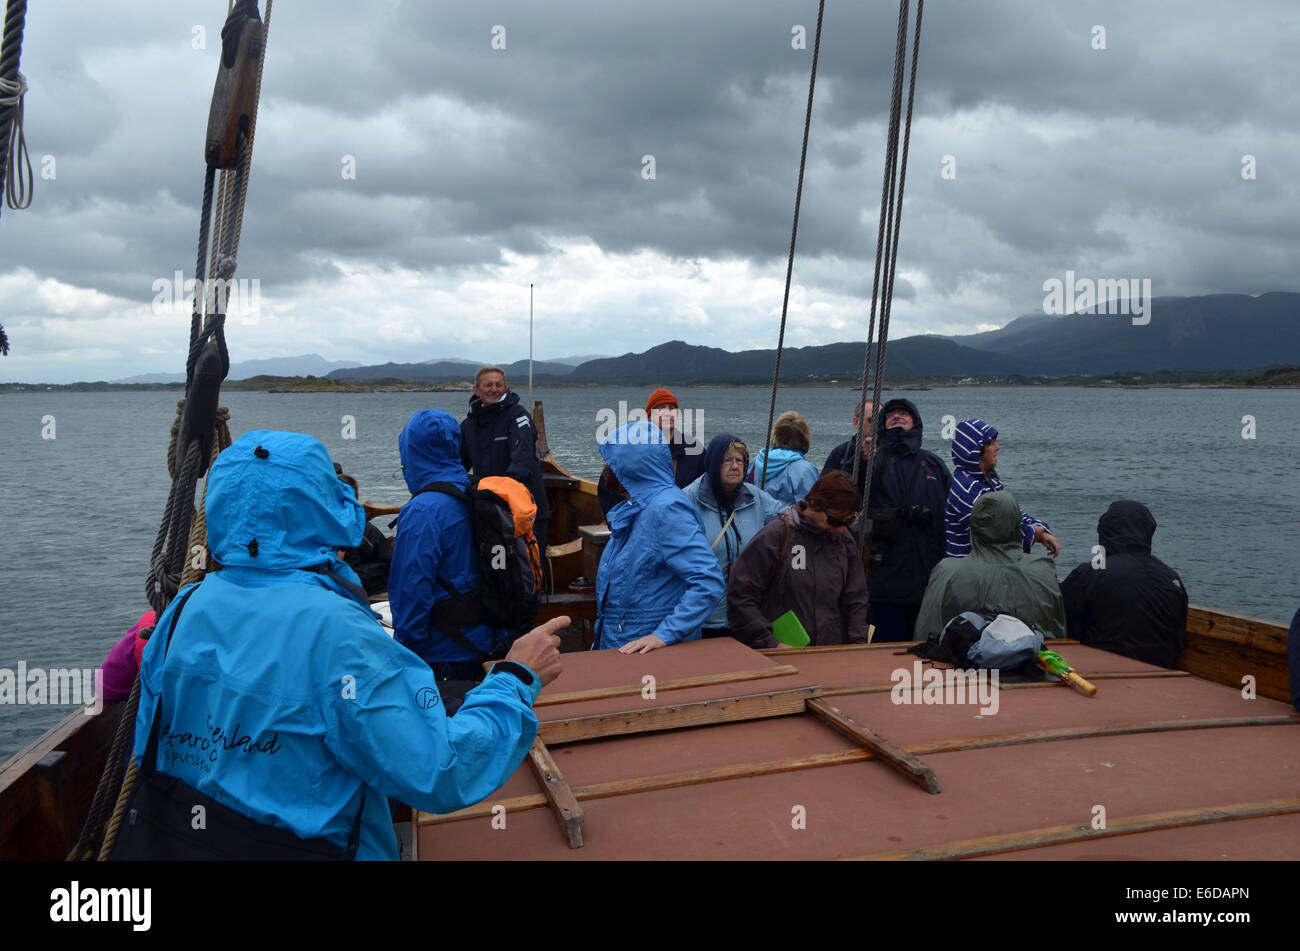 Nr.Kristiansund is theAtlanticRd,an unprotected stretch of road andis open to weather. Vikings gathered on the coast - Stock Image